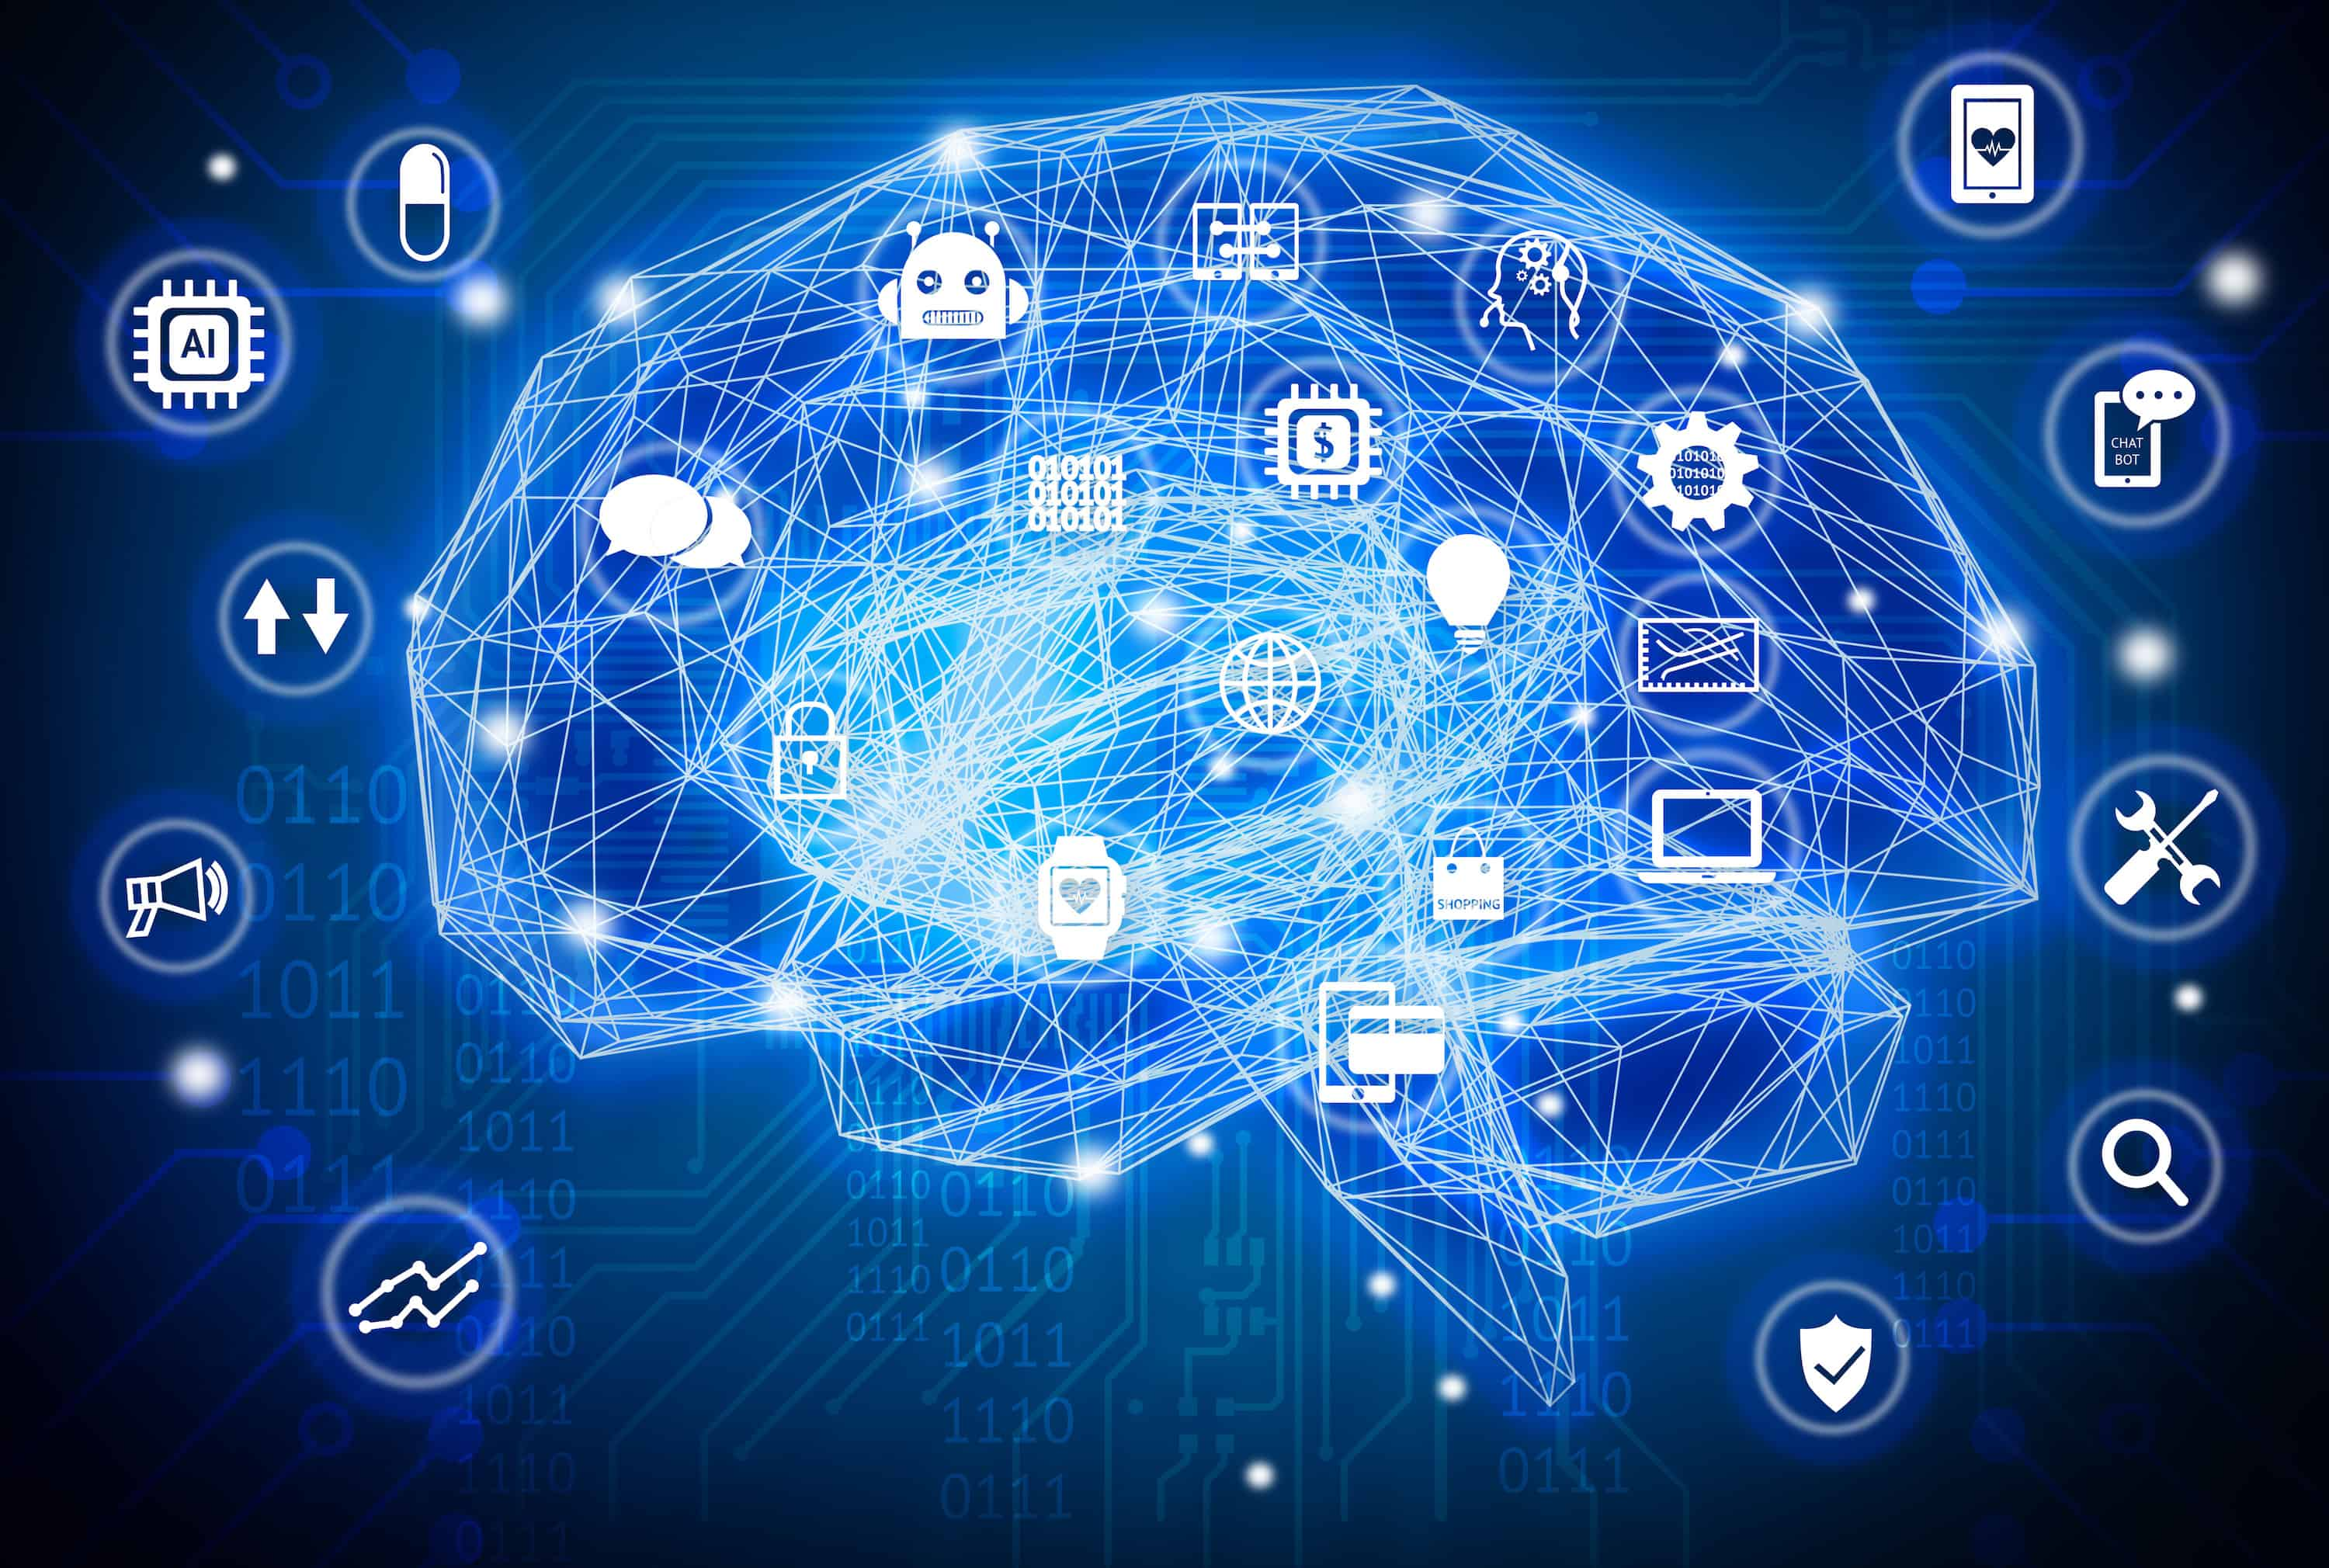 Global AI in IoT Market 2020 Industry Research, Segmentation, Key Players  Analysis and Forecast to 2025 – Owned